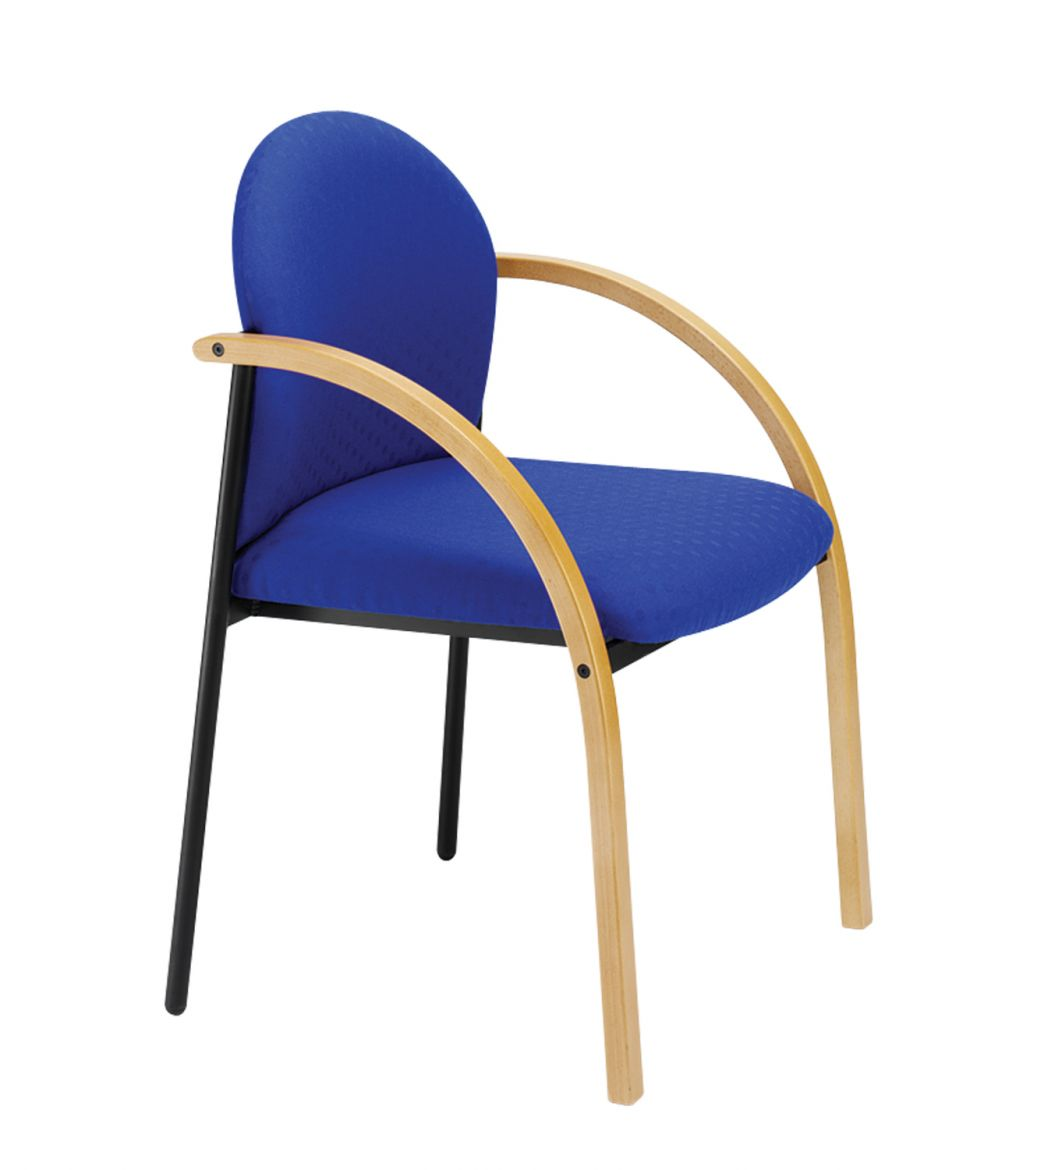 Meeting Chairs - Exceed